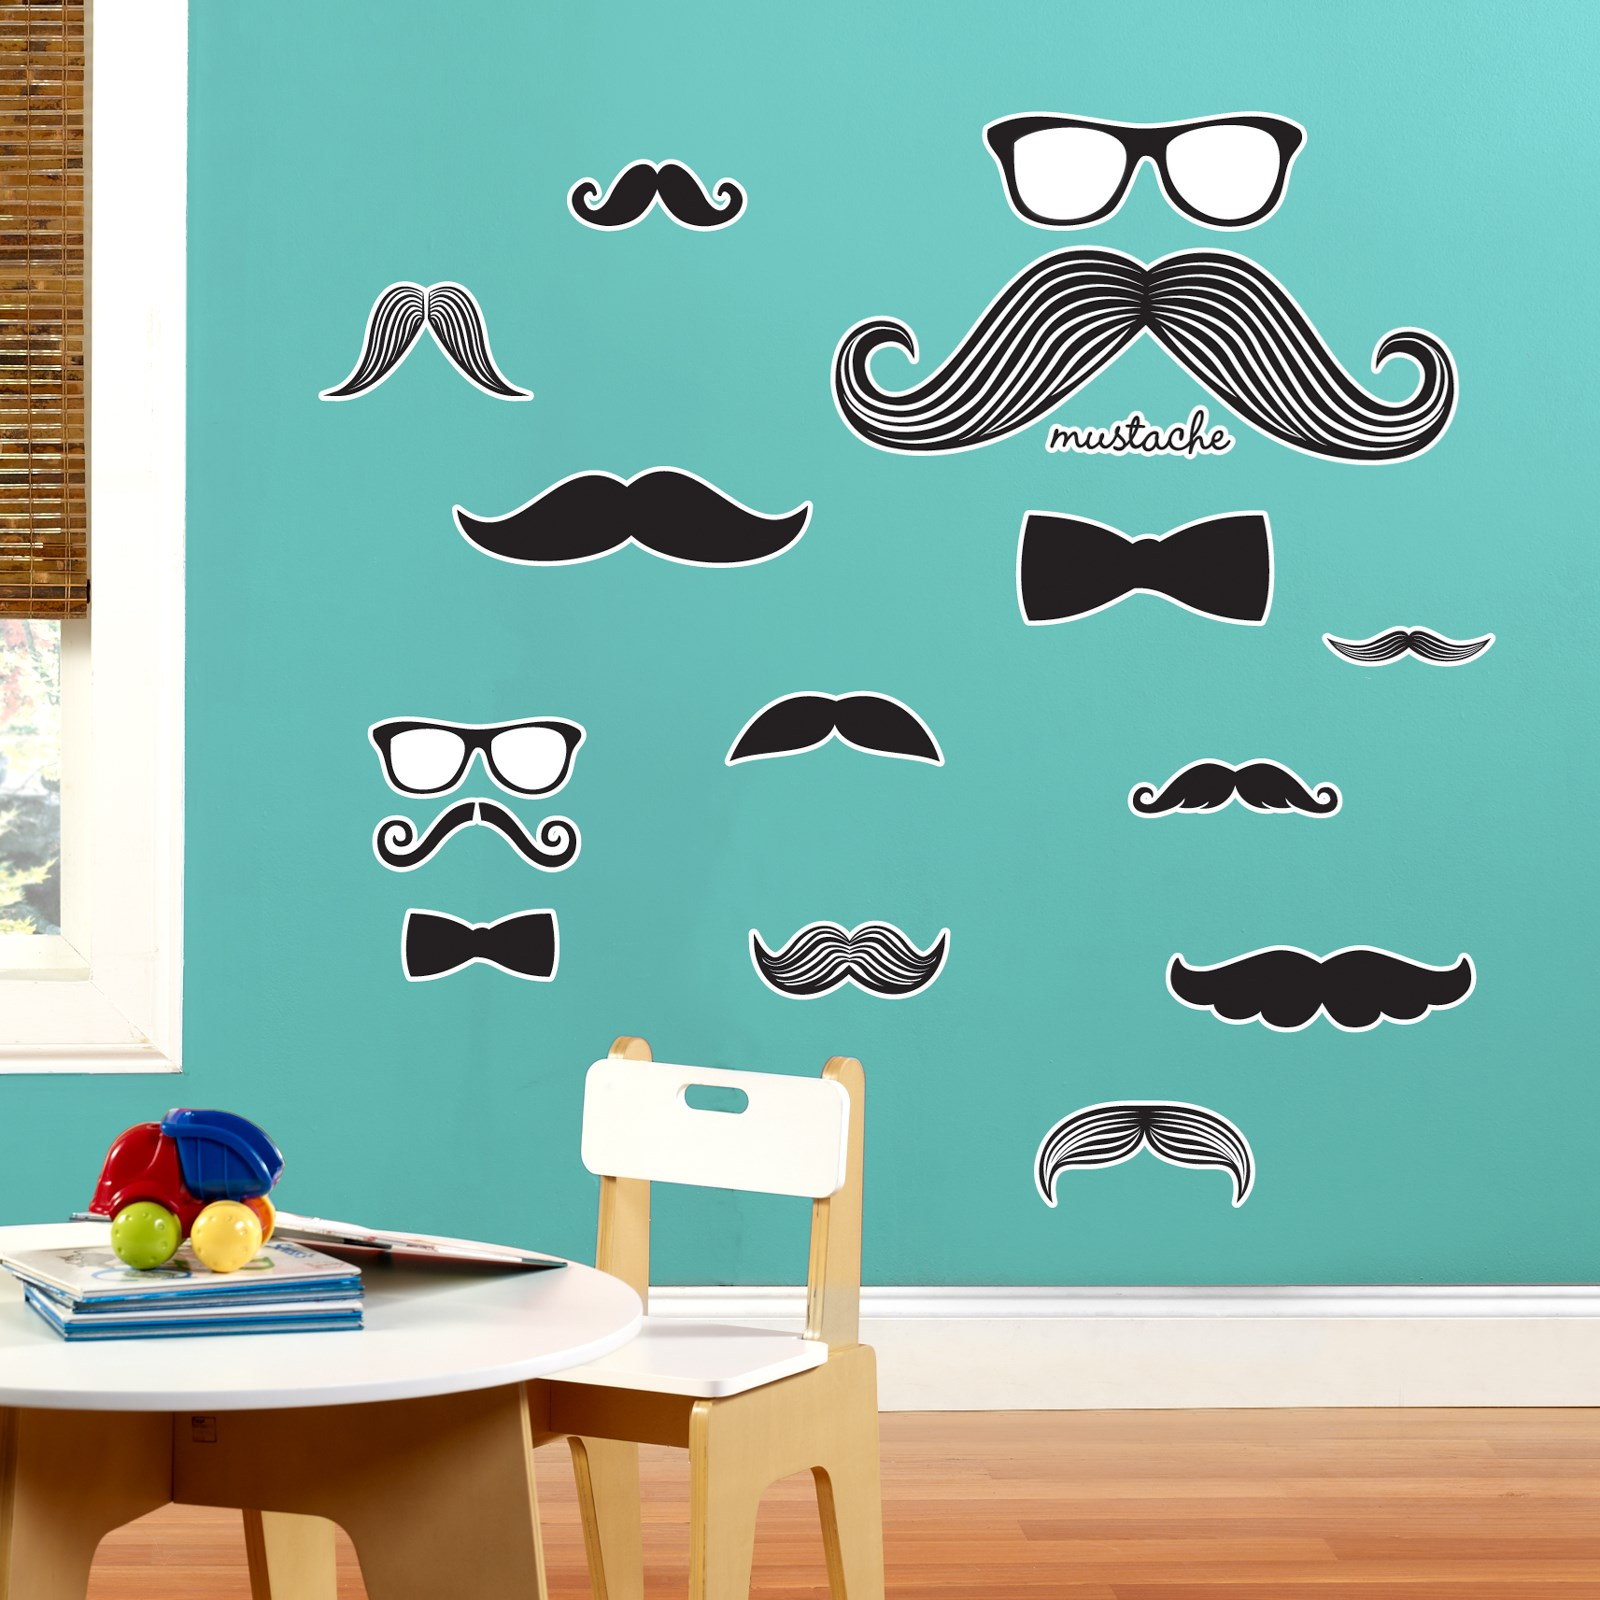 Image of Mustache Giant Wall Decal